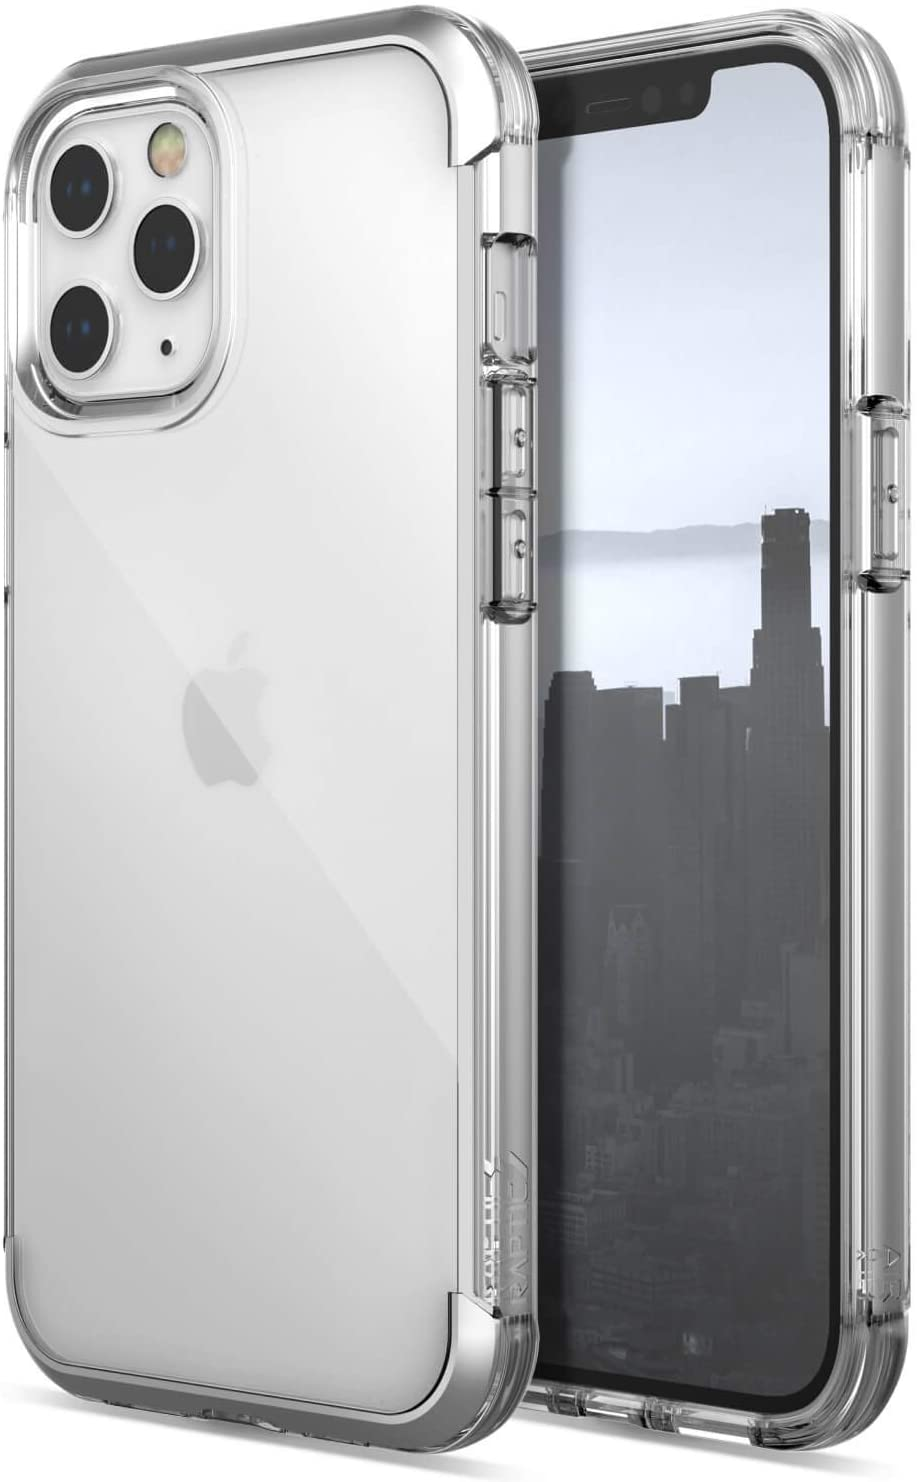 Raptic Air, iPhone 12 & iPhone 12 Pro Case - Military Grade Drop Tested, Anodized Aluminum, TPU, and Polycarbonate Protective Case for Apple iPhone 12 & iPhone 12 Pro, Clear